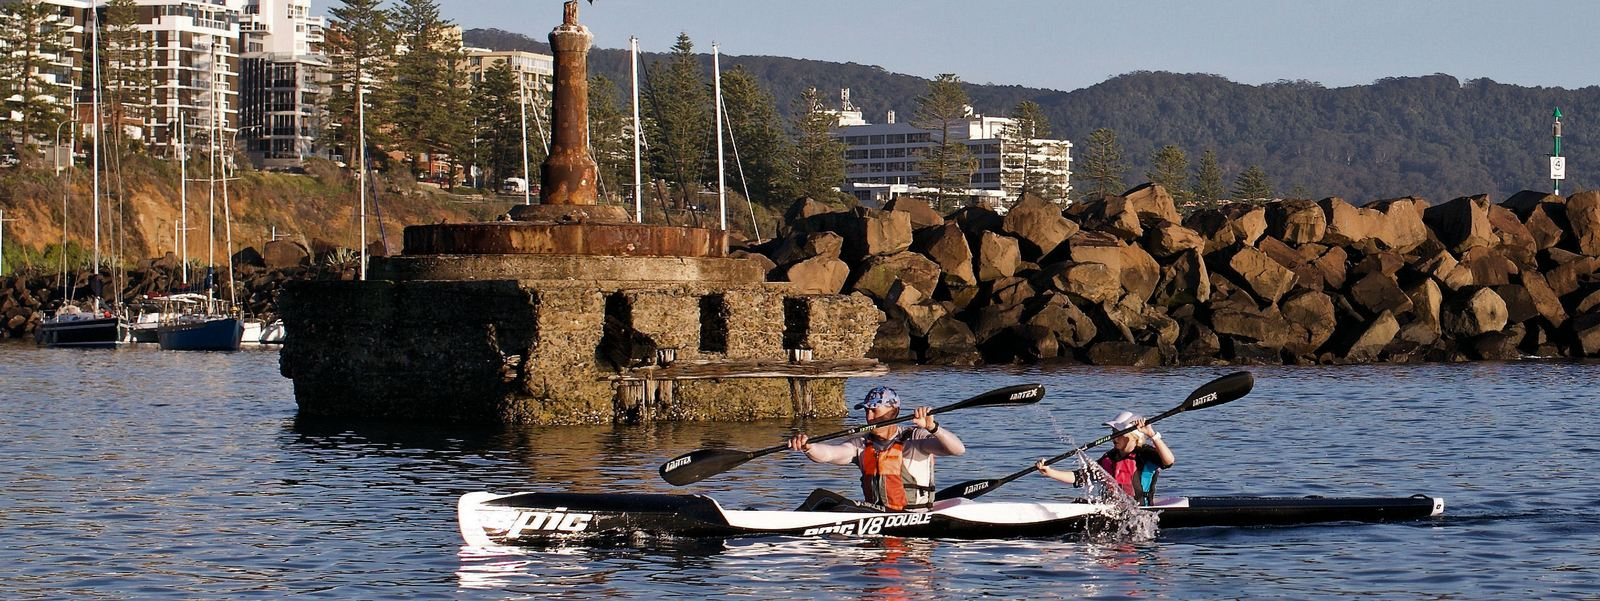 Epic V8 Double Elite Wollongong Harbour